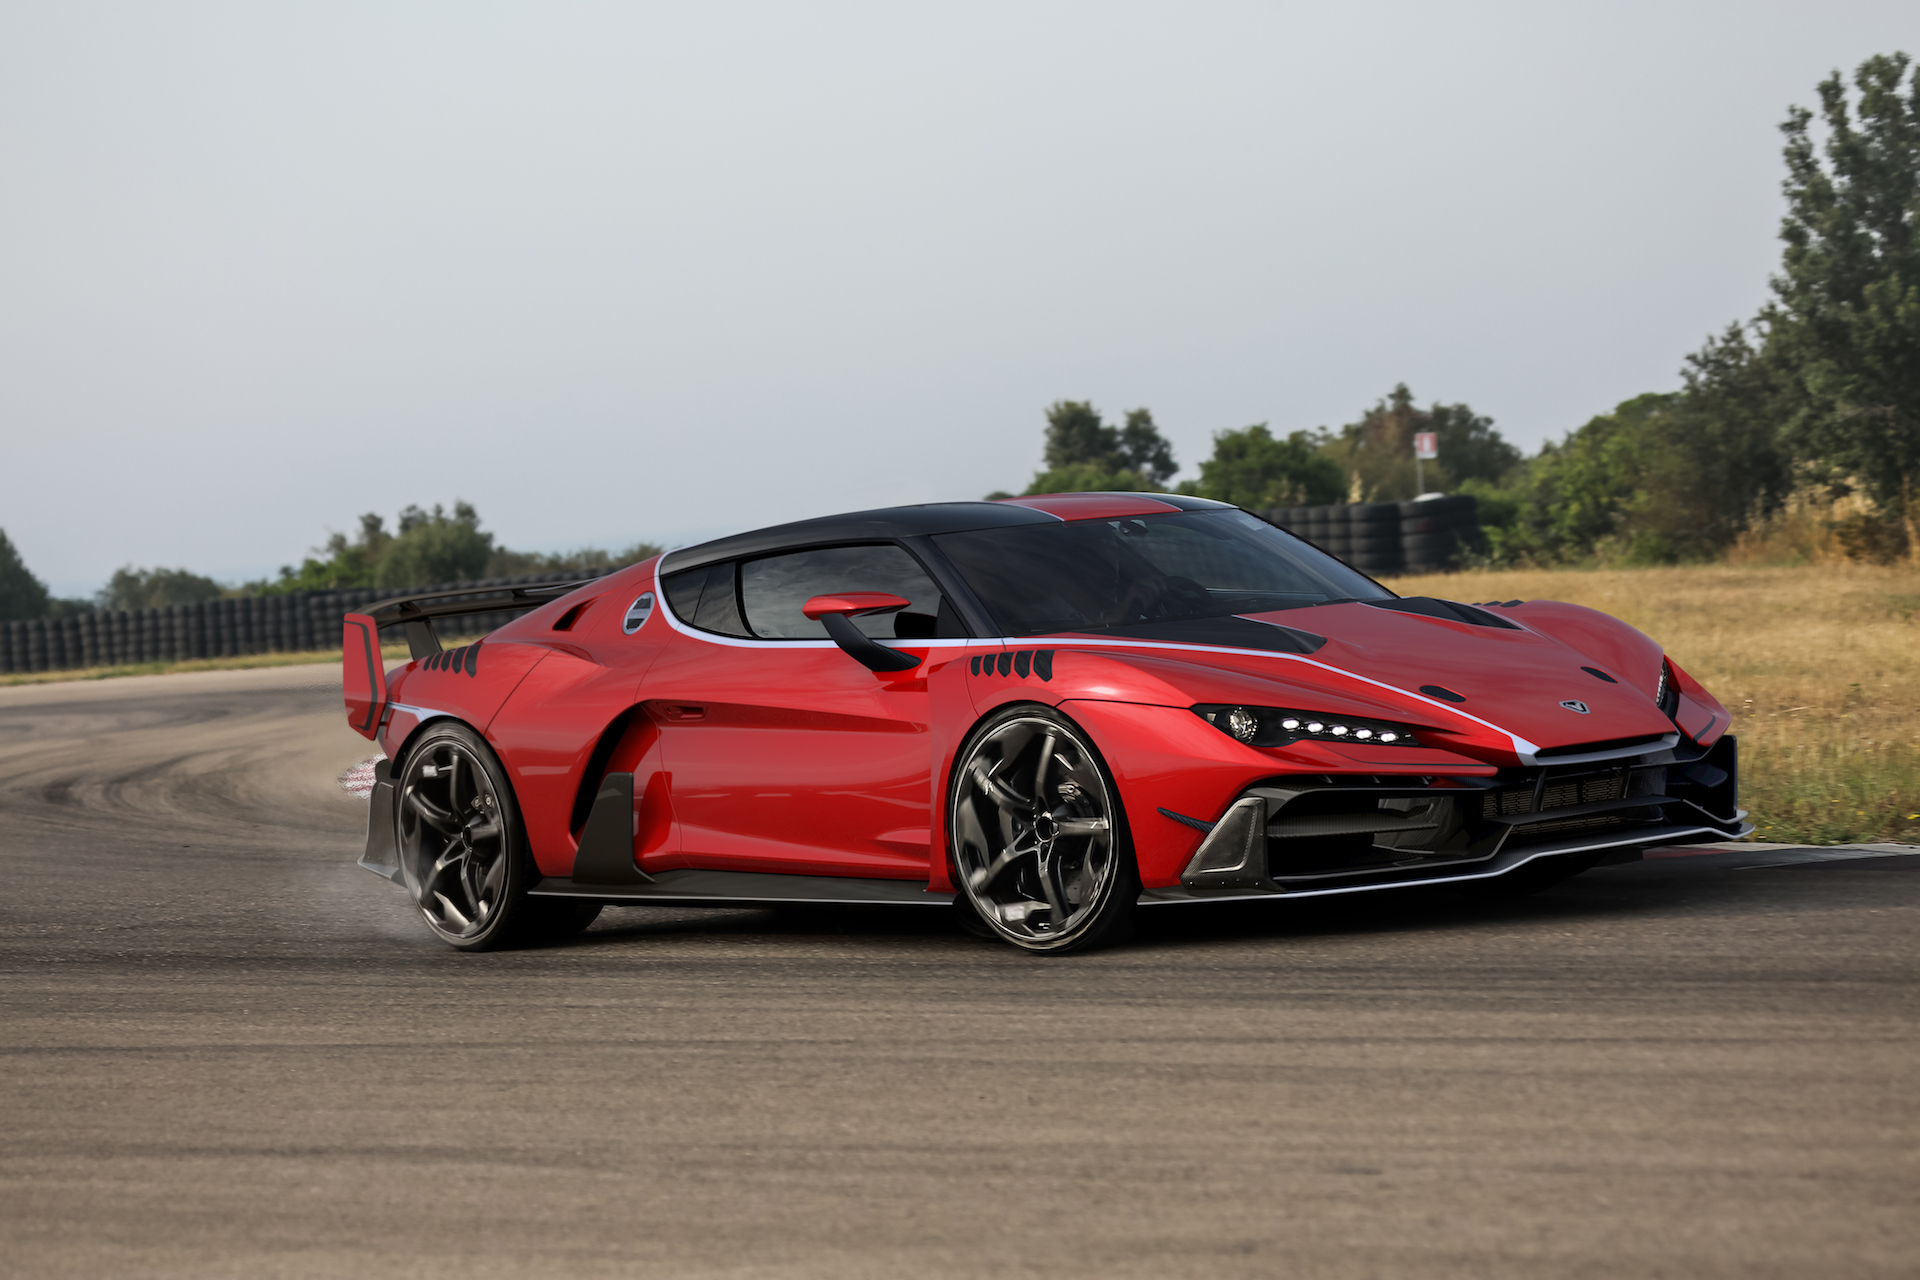 Italdesign Zerouno sold out, roadster being considered